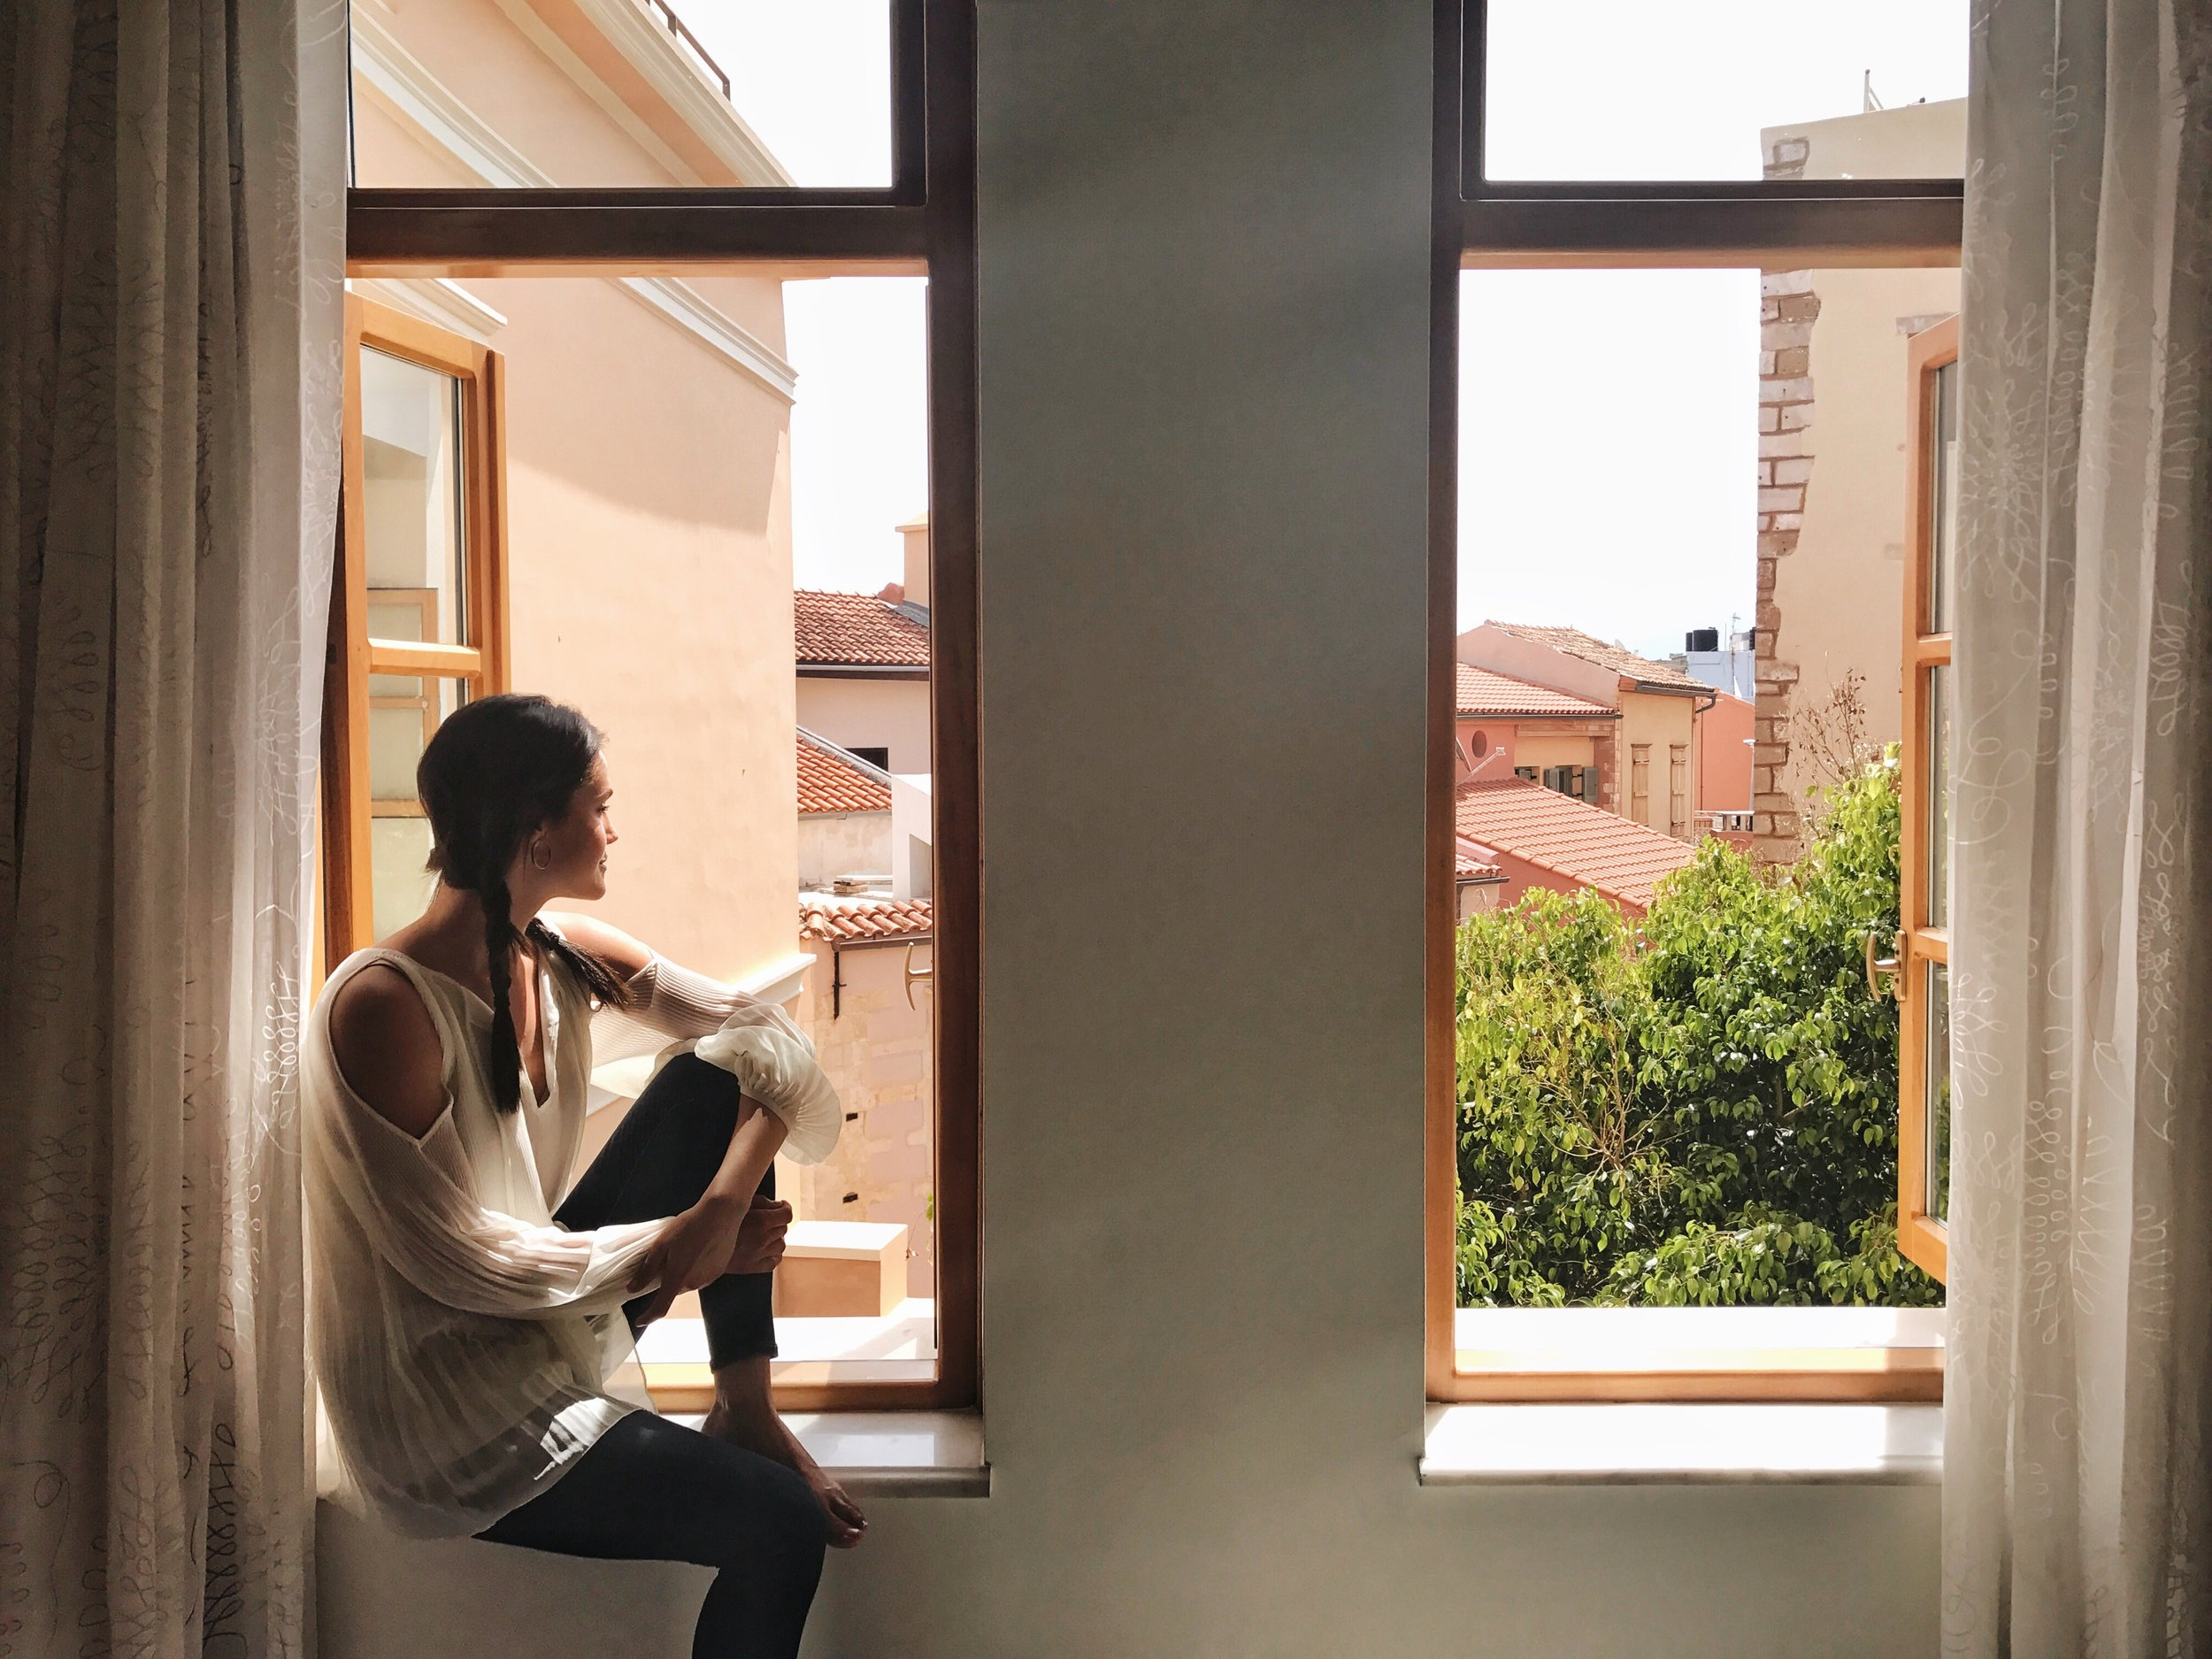 The windows in our lovely room, overlooking the courtyard